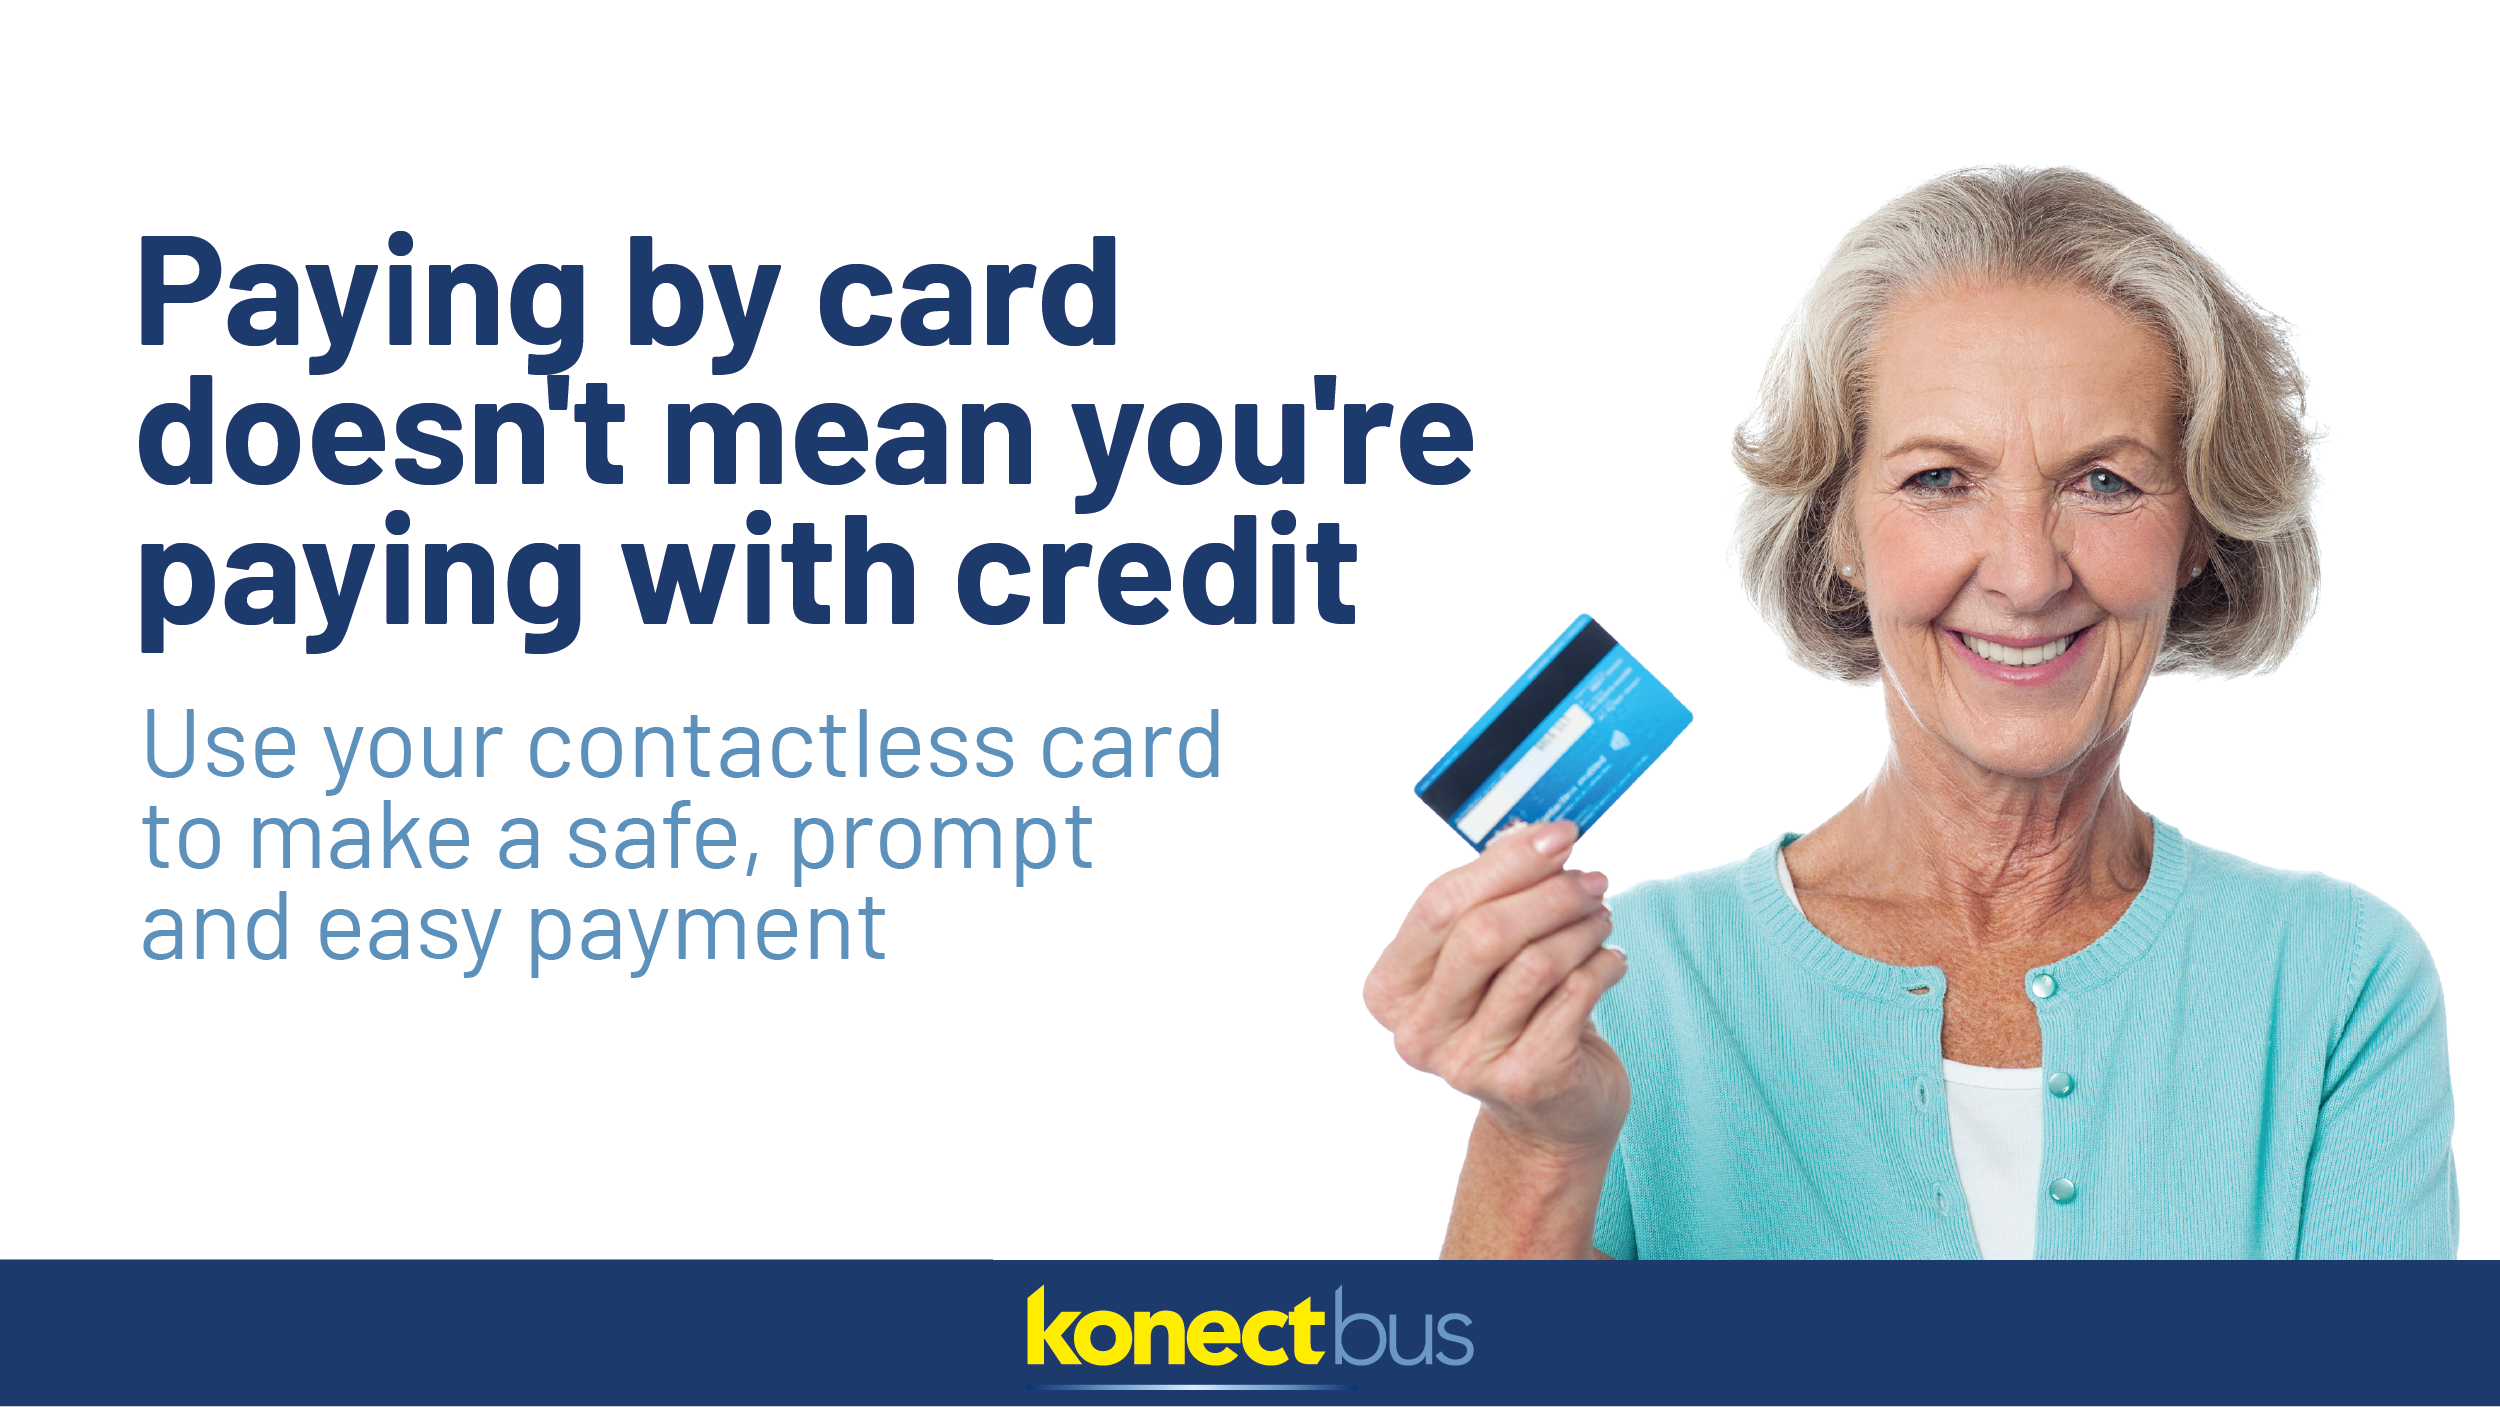 Image reading 'Paying by card doesn't mean you're paying with credit'